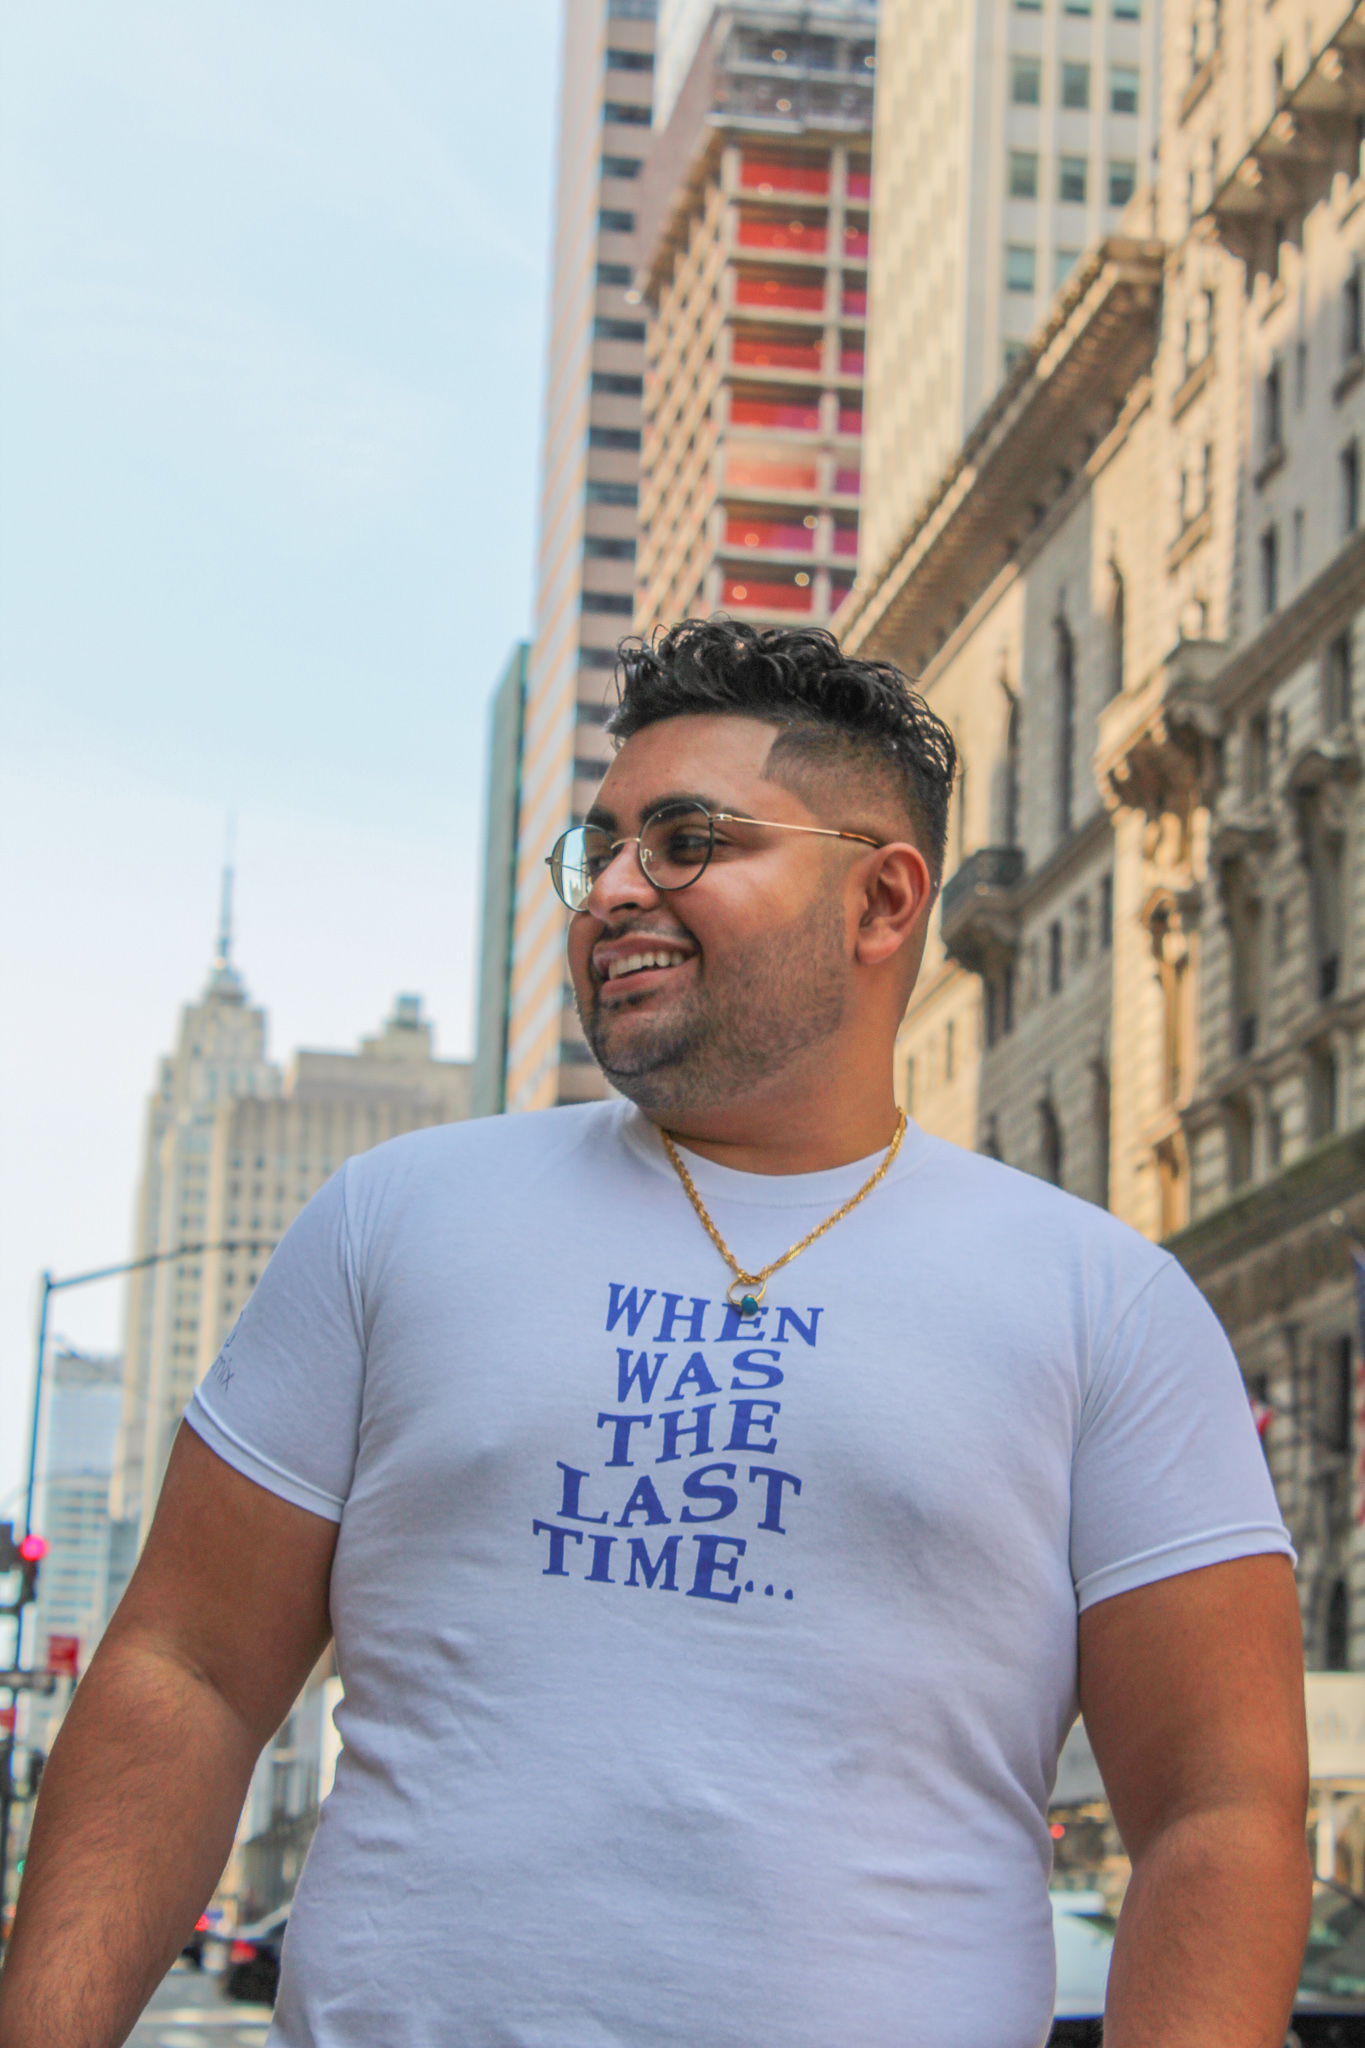 When Was the Last Time Unisex Tee